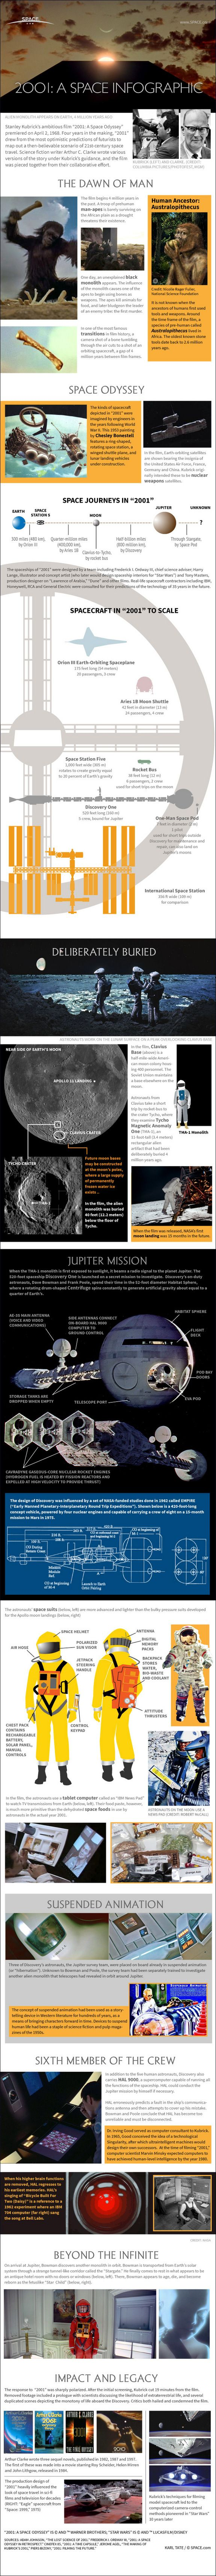 """Infographic: """"2001: A Space Odyssey's"""" depiction of space travel and how it differs from reality"""